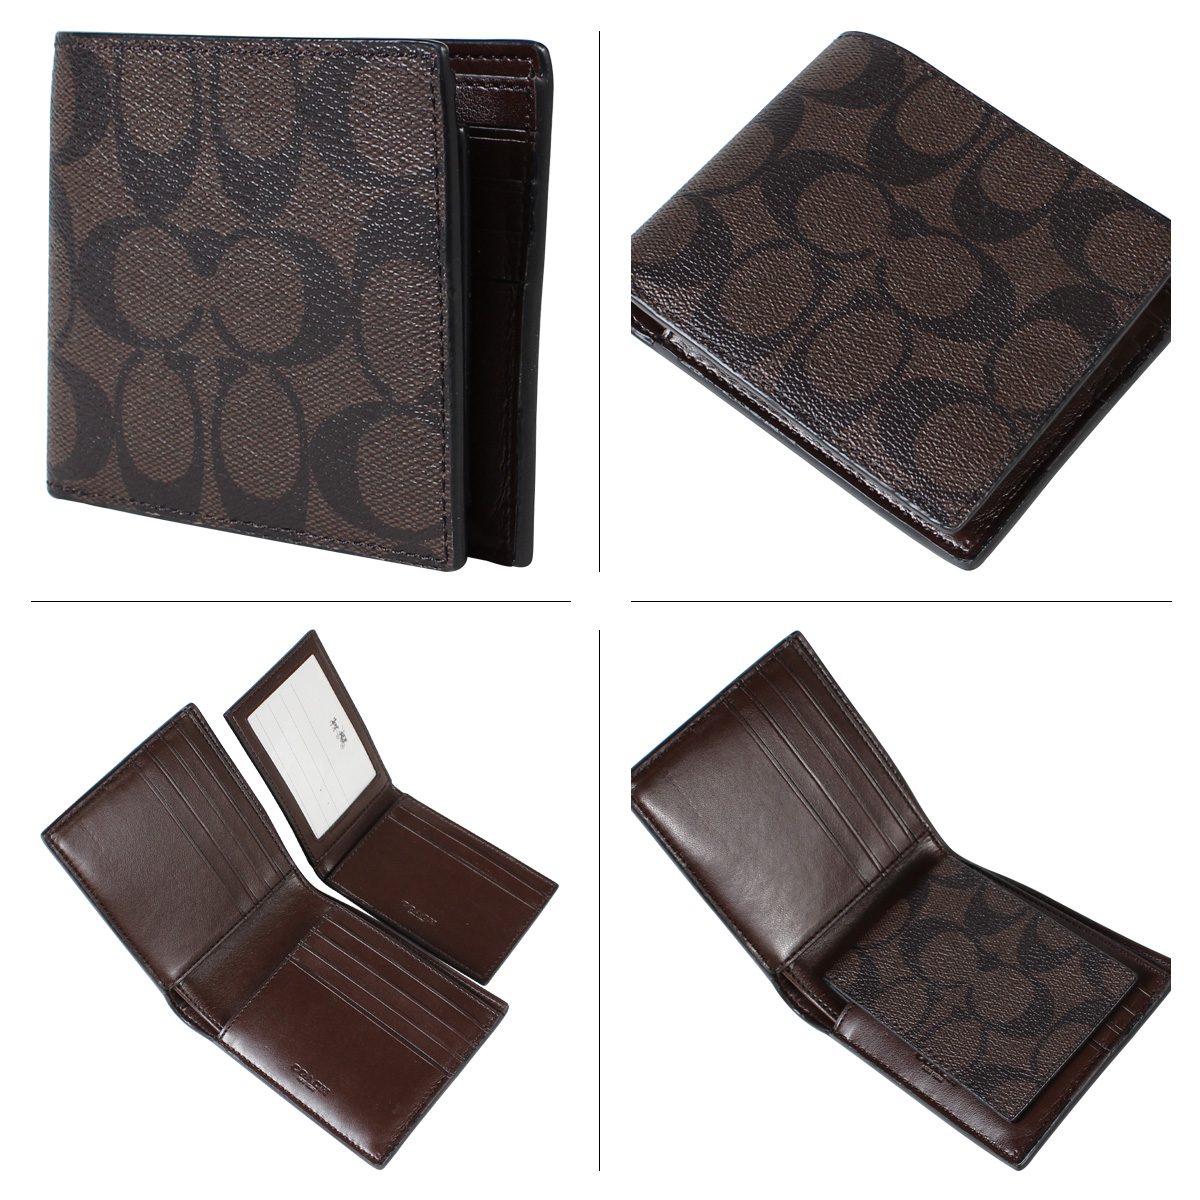 the latest 9e850 aeed1 COACH coach mens wallet two bi-fold Wallet case F74993 mahogany x Brown